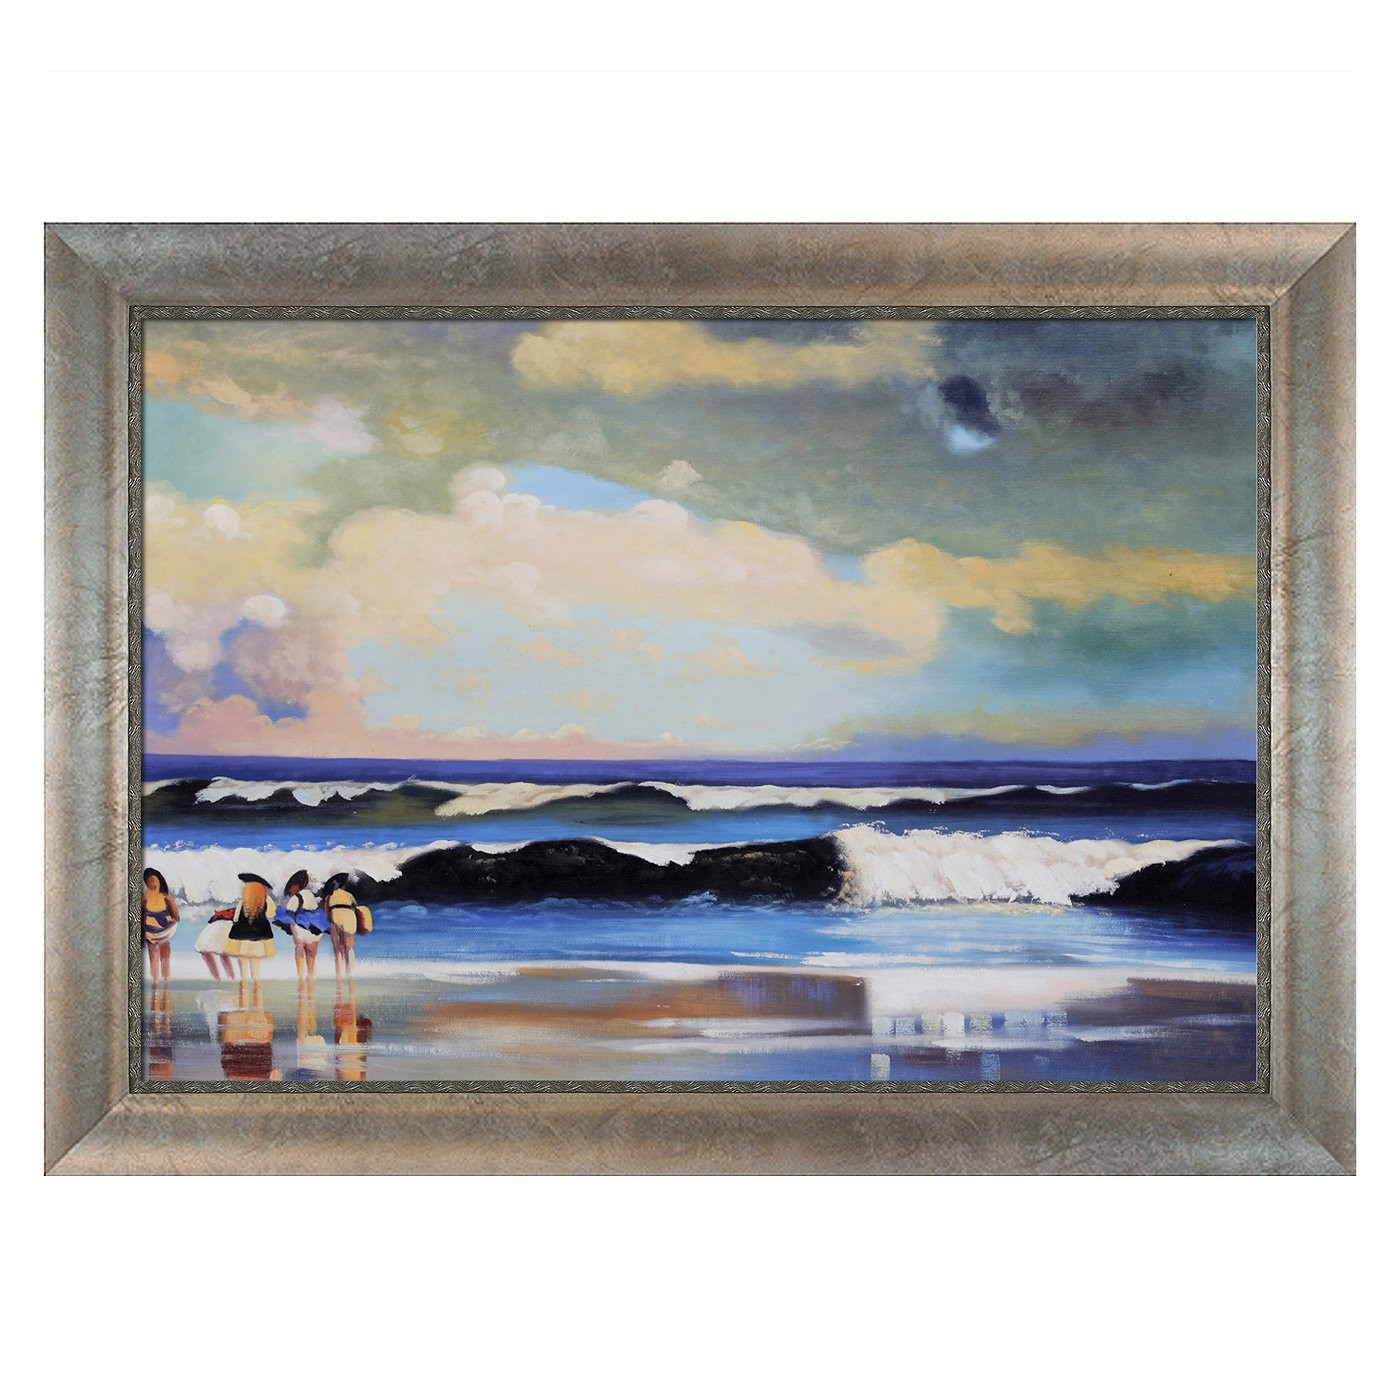 Best ideas about Overstock Wall Art . Save or Pin Overstock Art WH2804 FR X36 Winslow Homer the Now.